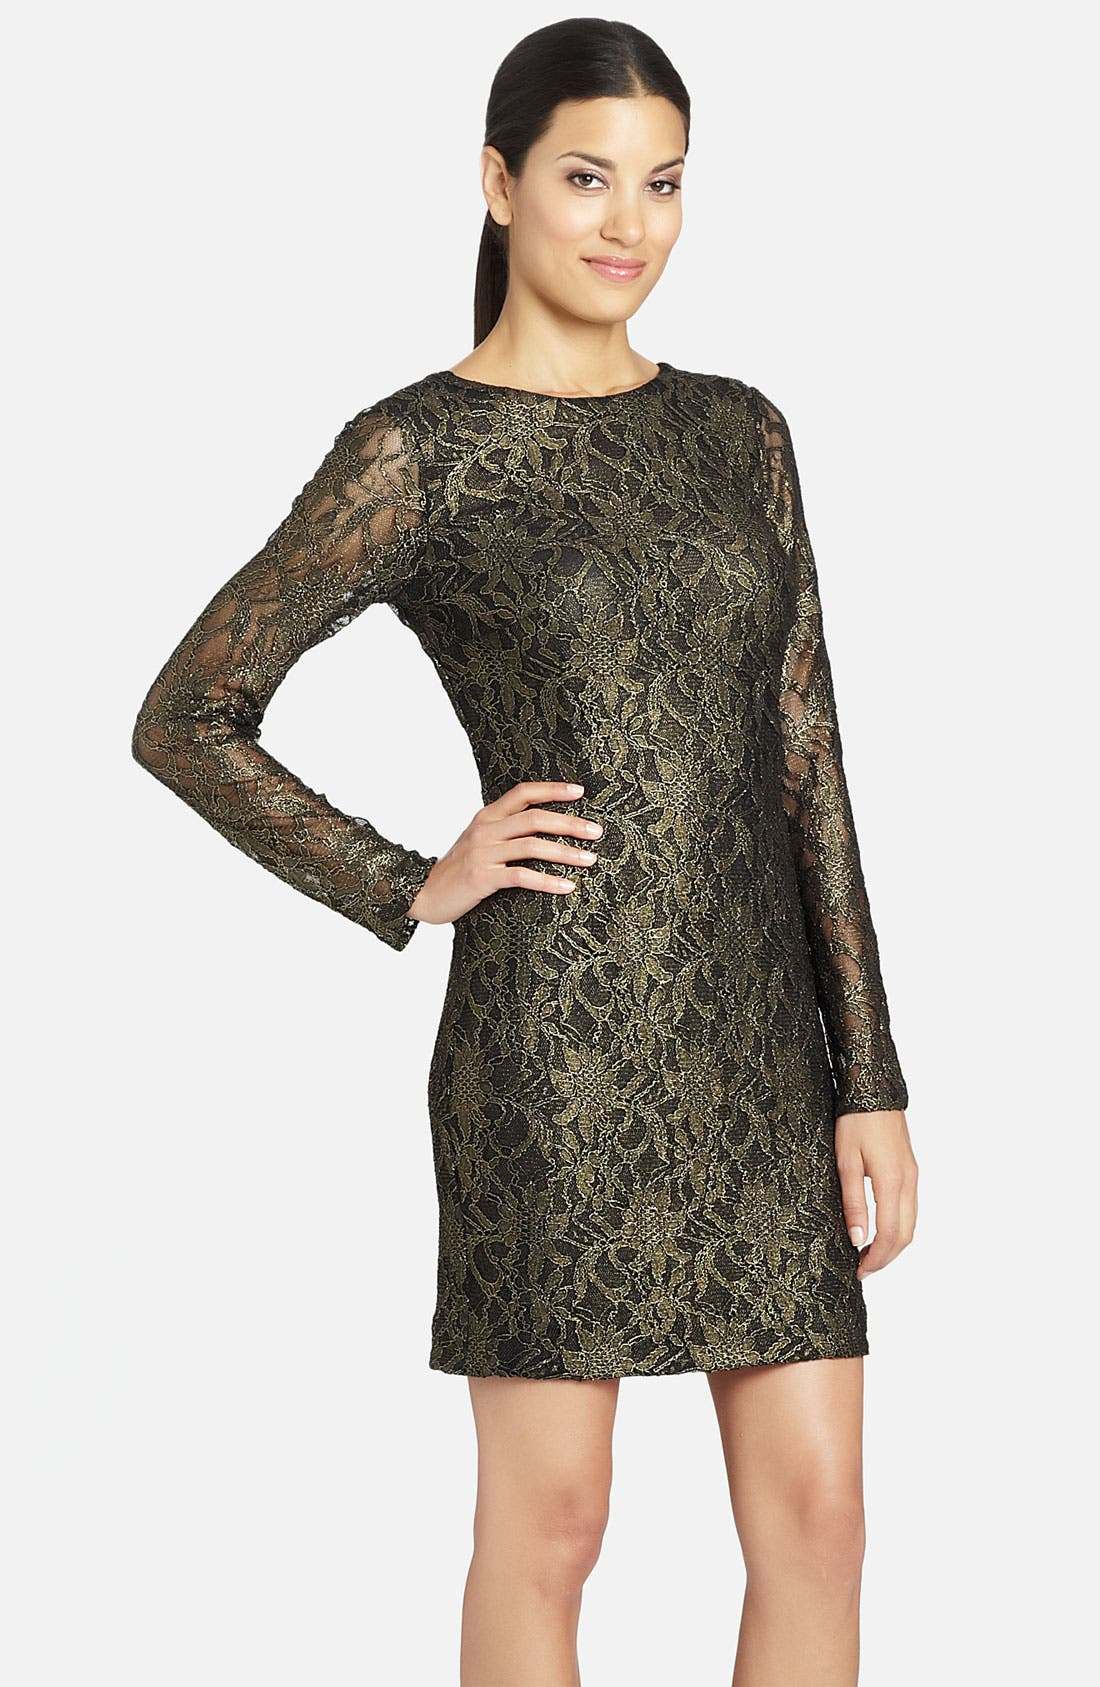 Alternate Image 1 Selected - Cynthia Steffe 'Lydia' Metallic Illusion Sleeve Lace Dress